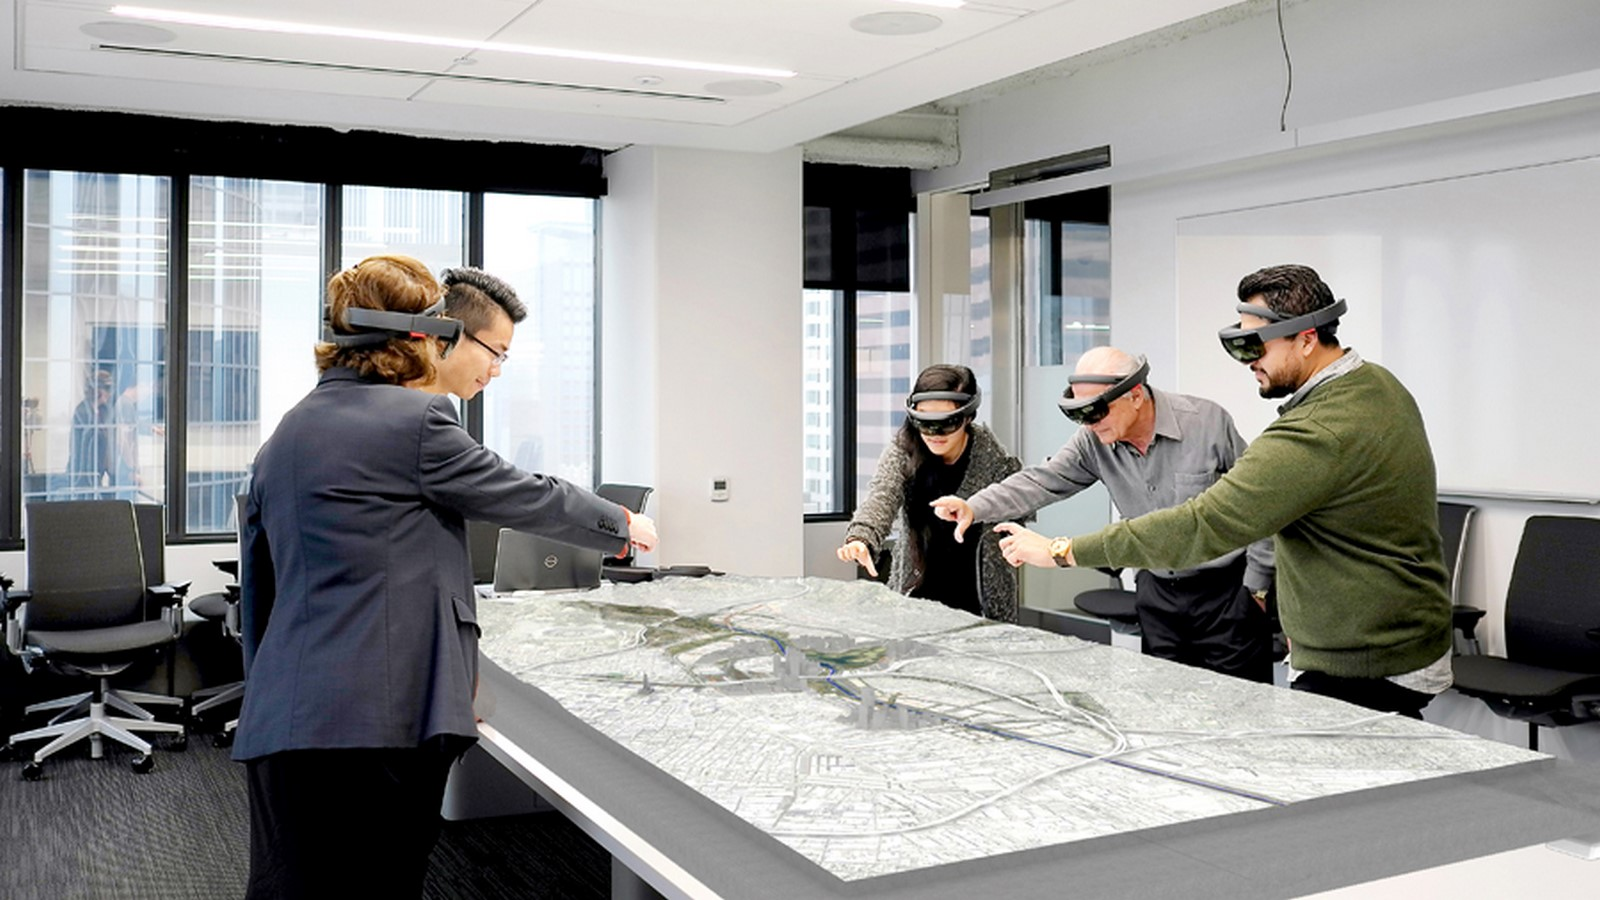 Relevance of Virtual reality in architecture- why do we need it?- Sheet5